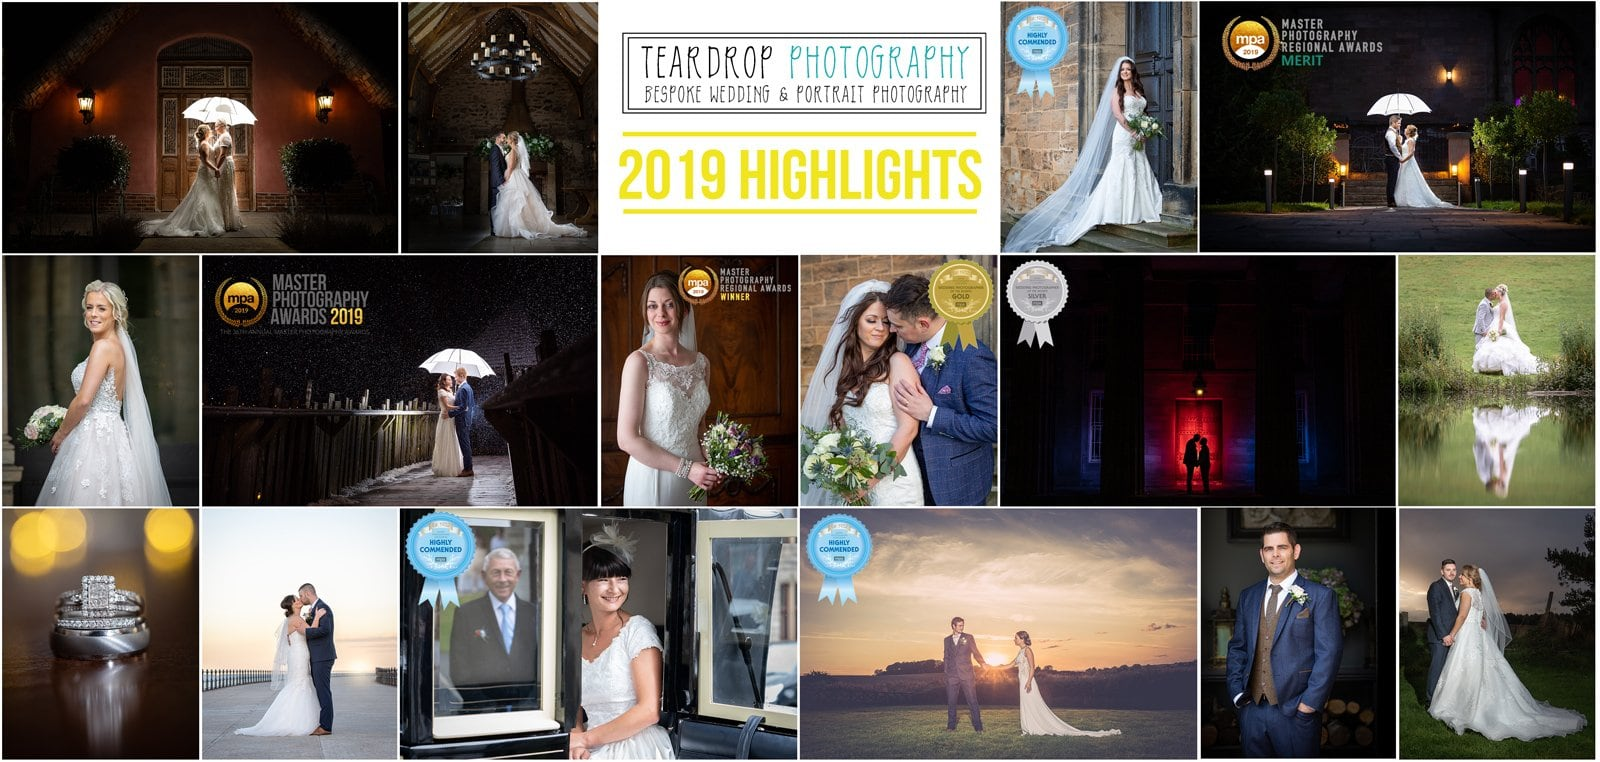 shows highlight images and awards for 2019